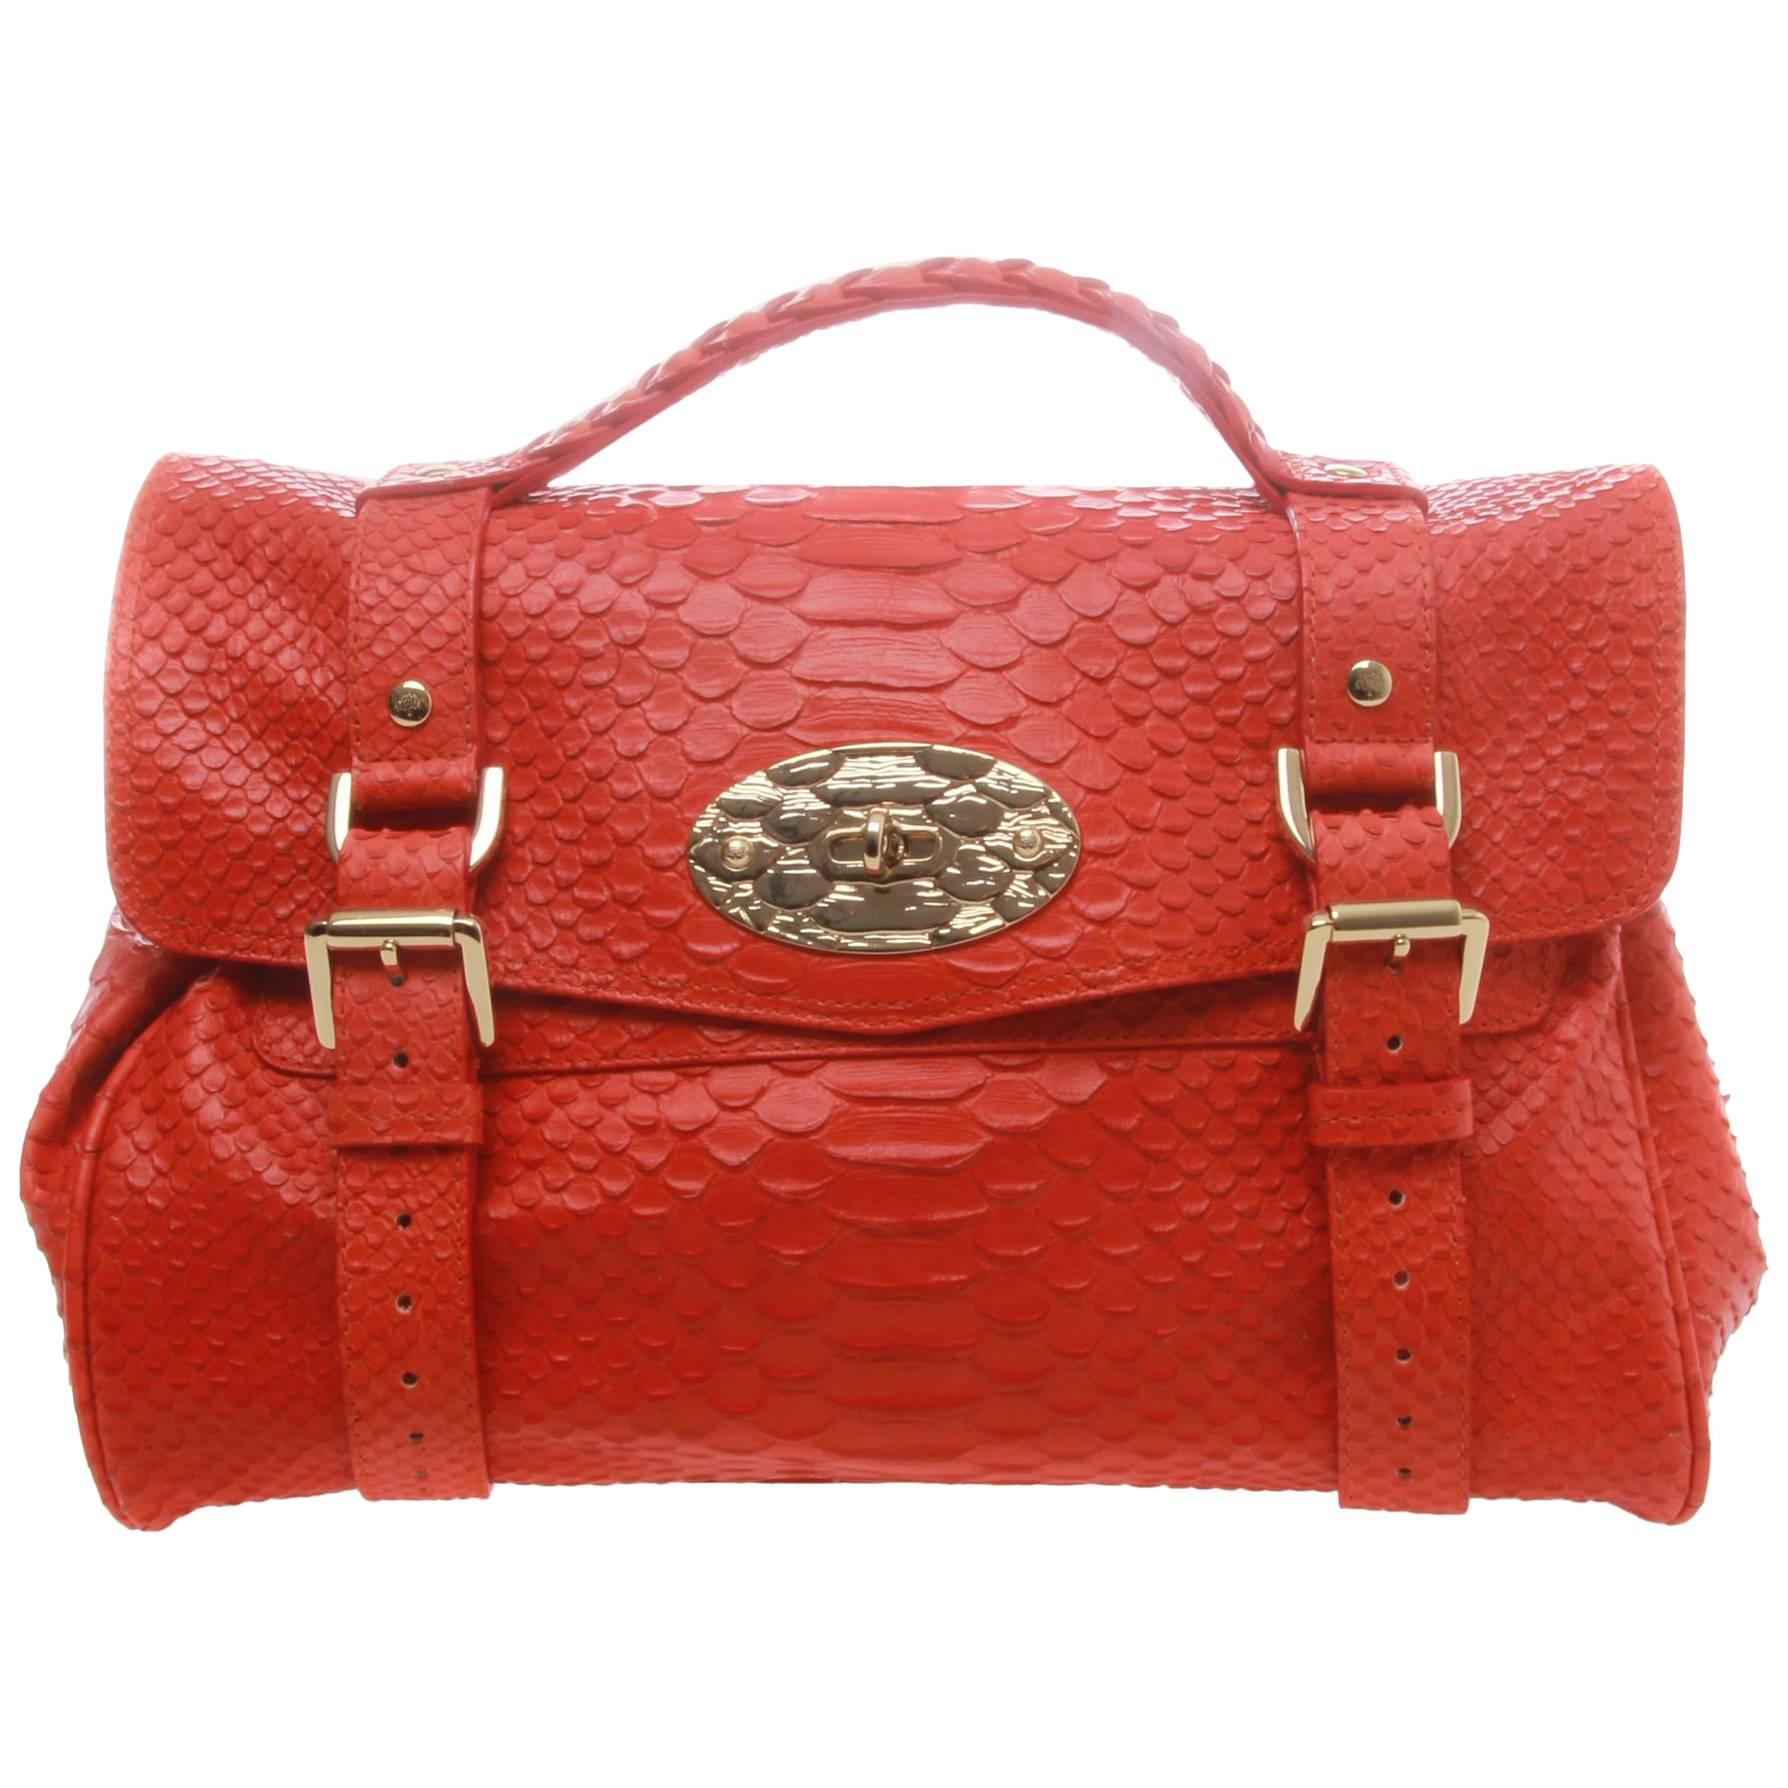 ... bags wallets on 7b5fc 8b947 promo code for mulberry alexa flame silky  snake print leather satchel bd987 2a45c ... 994b8f22ec51b